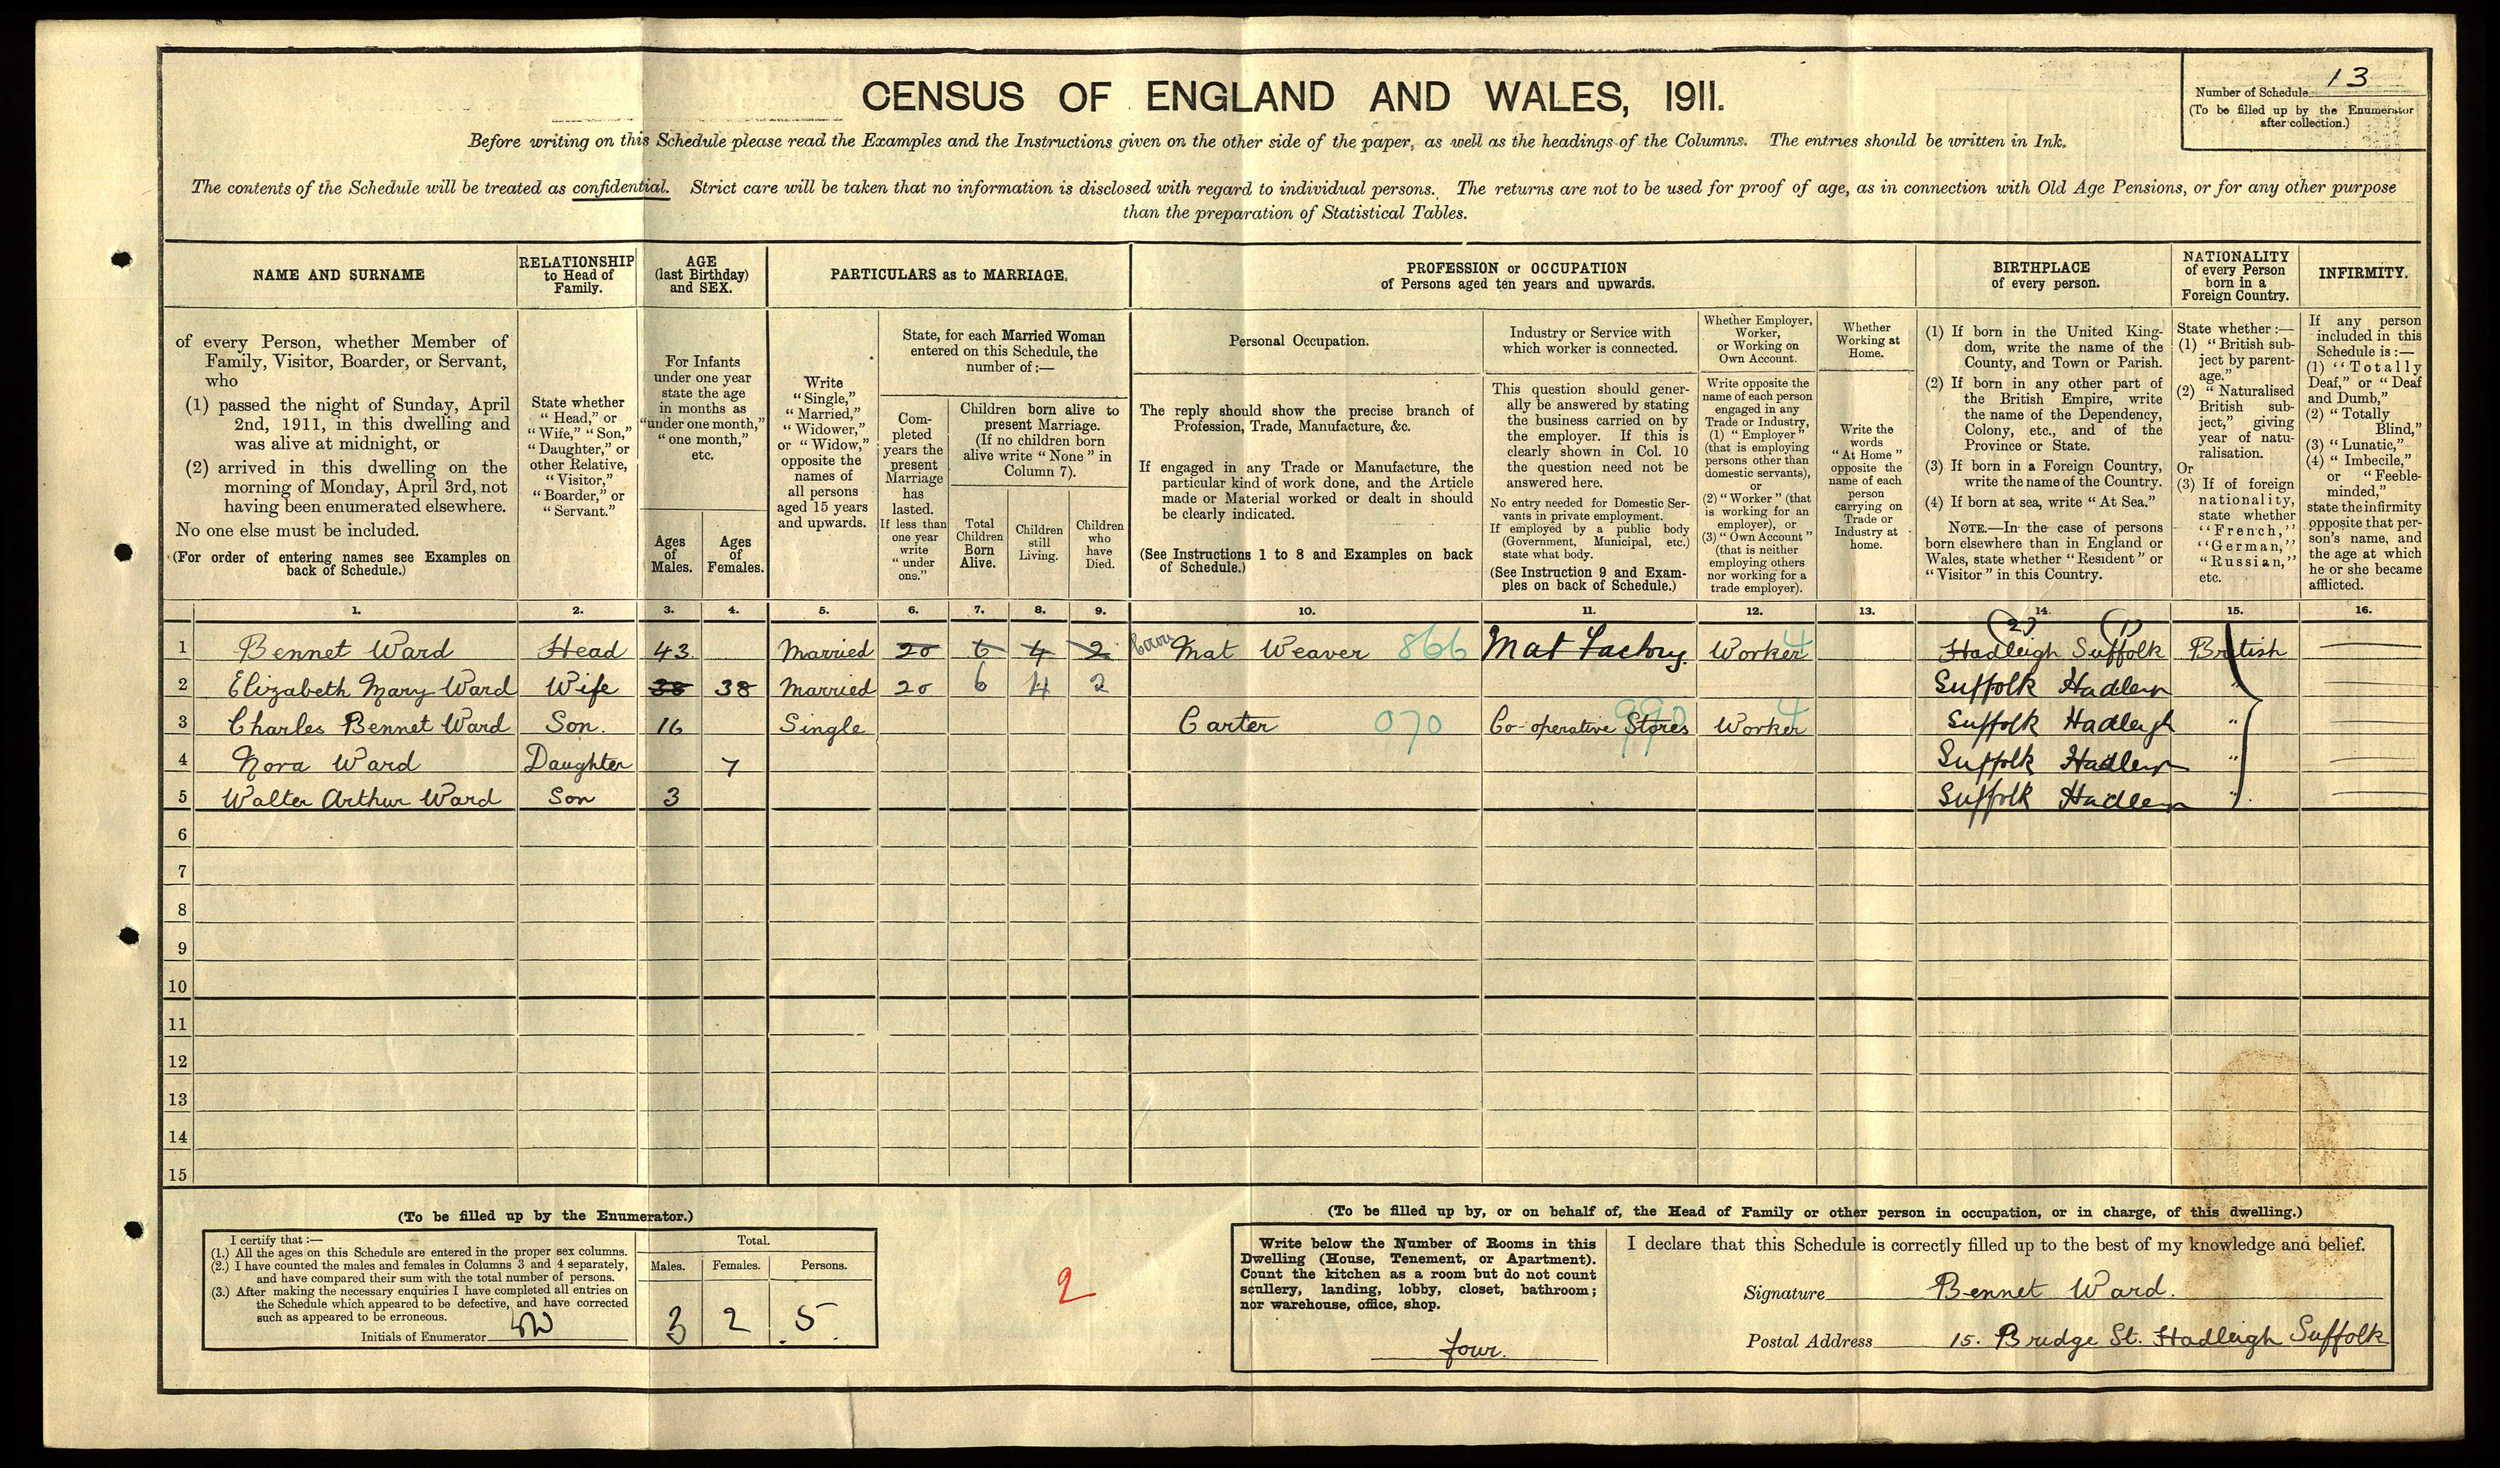 anc 1911 census CB Ward.jpg